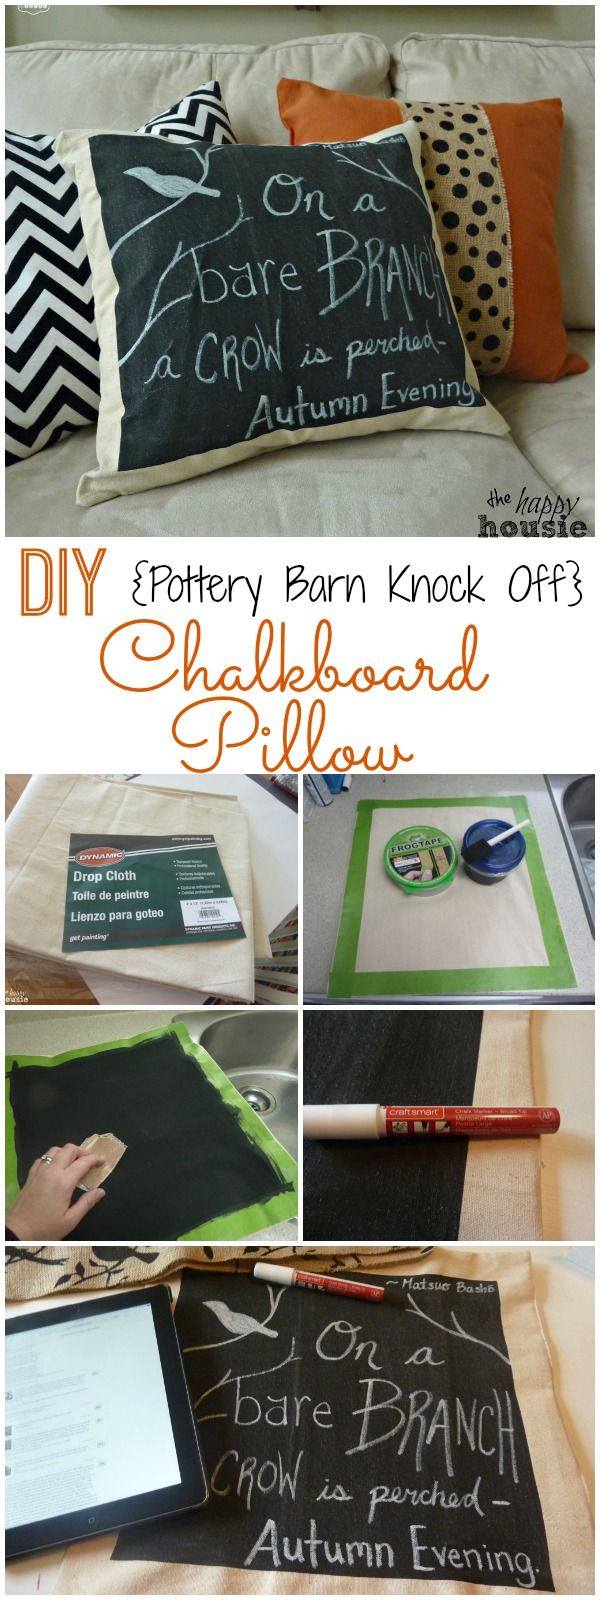 How to make your own DIY Pottery Barn Knock Off Chalkboard Pillow - perfect for…